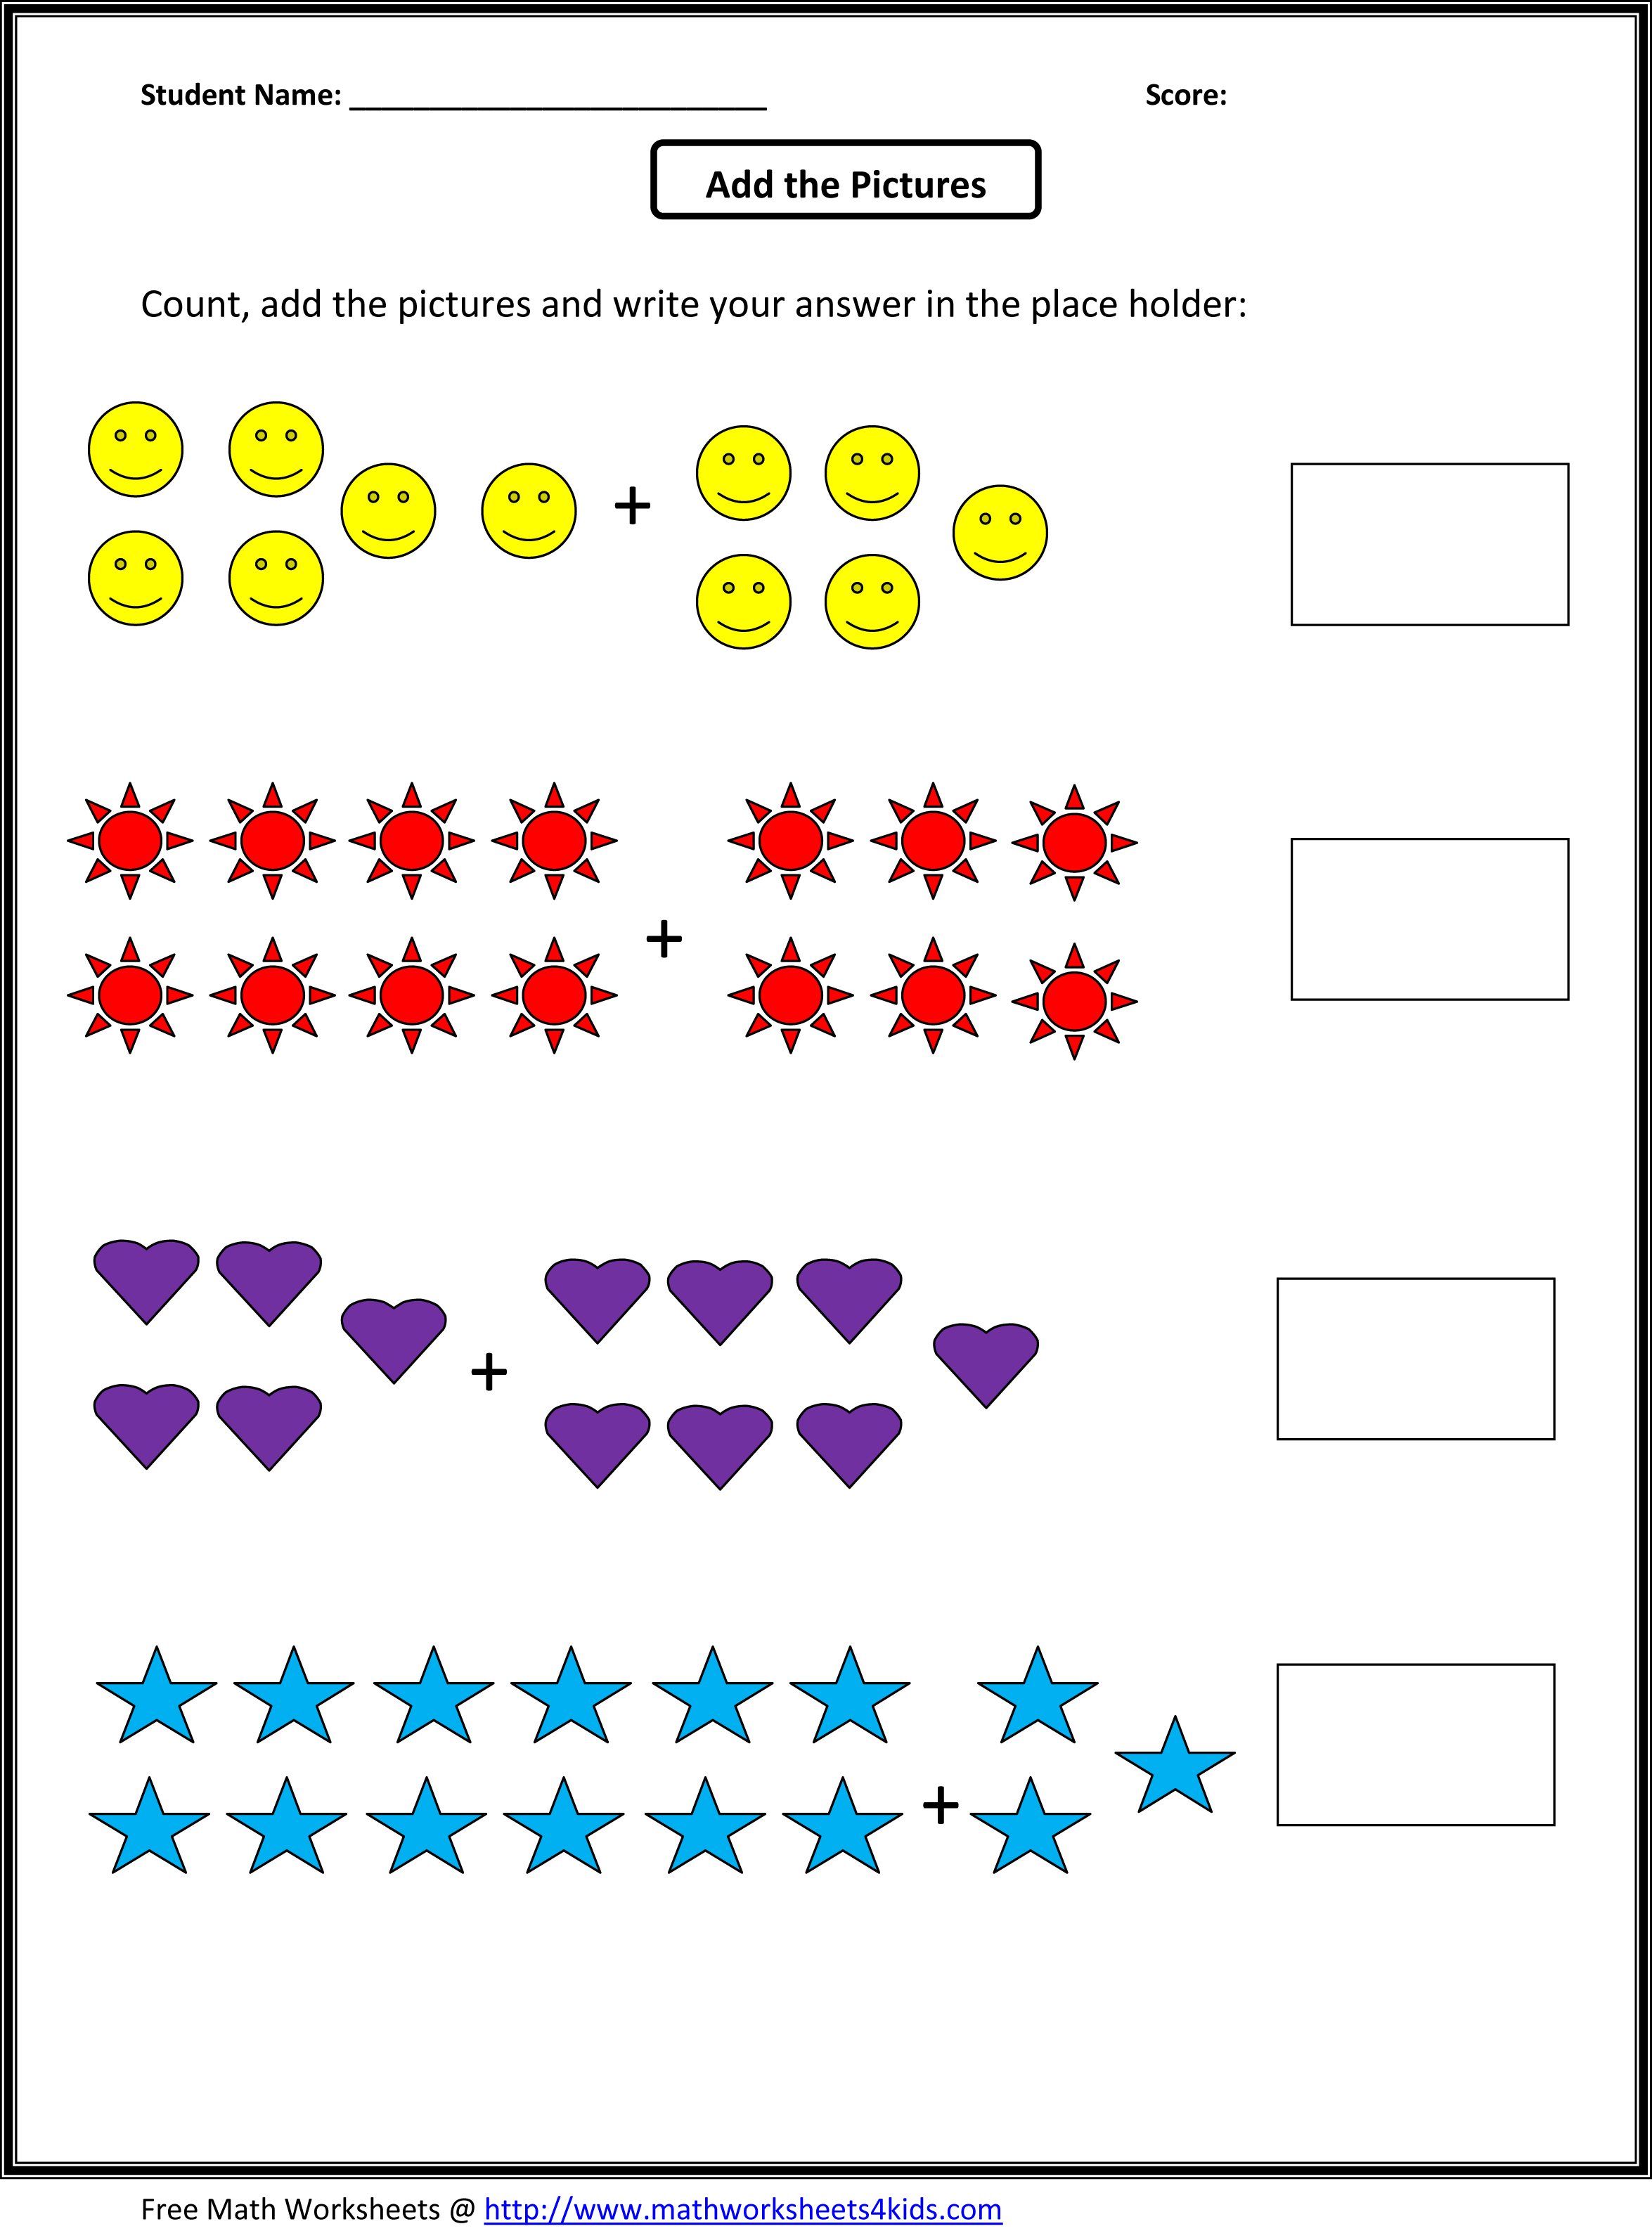 Proatmealus  Pleasant Grade  Maths Worksheet  Reocurent With Interesting Math Worksheets For St Grade Free  Reocurent With Agreeable The Letter B Worksheets Also Positive And Negative Exponents Worksheet In Addition Writing And Evaluating Expressions Worksheet And Integers Worksheet Grade  As Well As Shape Matching Worksheets Additionally Blank Check Worksheet From Reocurentcom With Proatmealus  Interesting Grade  Maths Worksheet  Reocurent With Agreeable Math Worksheets For St Grade Free  Reocurent And Pleasant The Letter B Worksheets Also Positive And Negative Exponents Worksheet In Addition Writing And Evaluating Expressions Worksheet From Reocurentcom